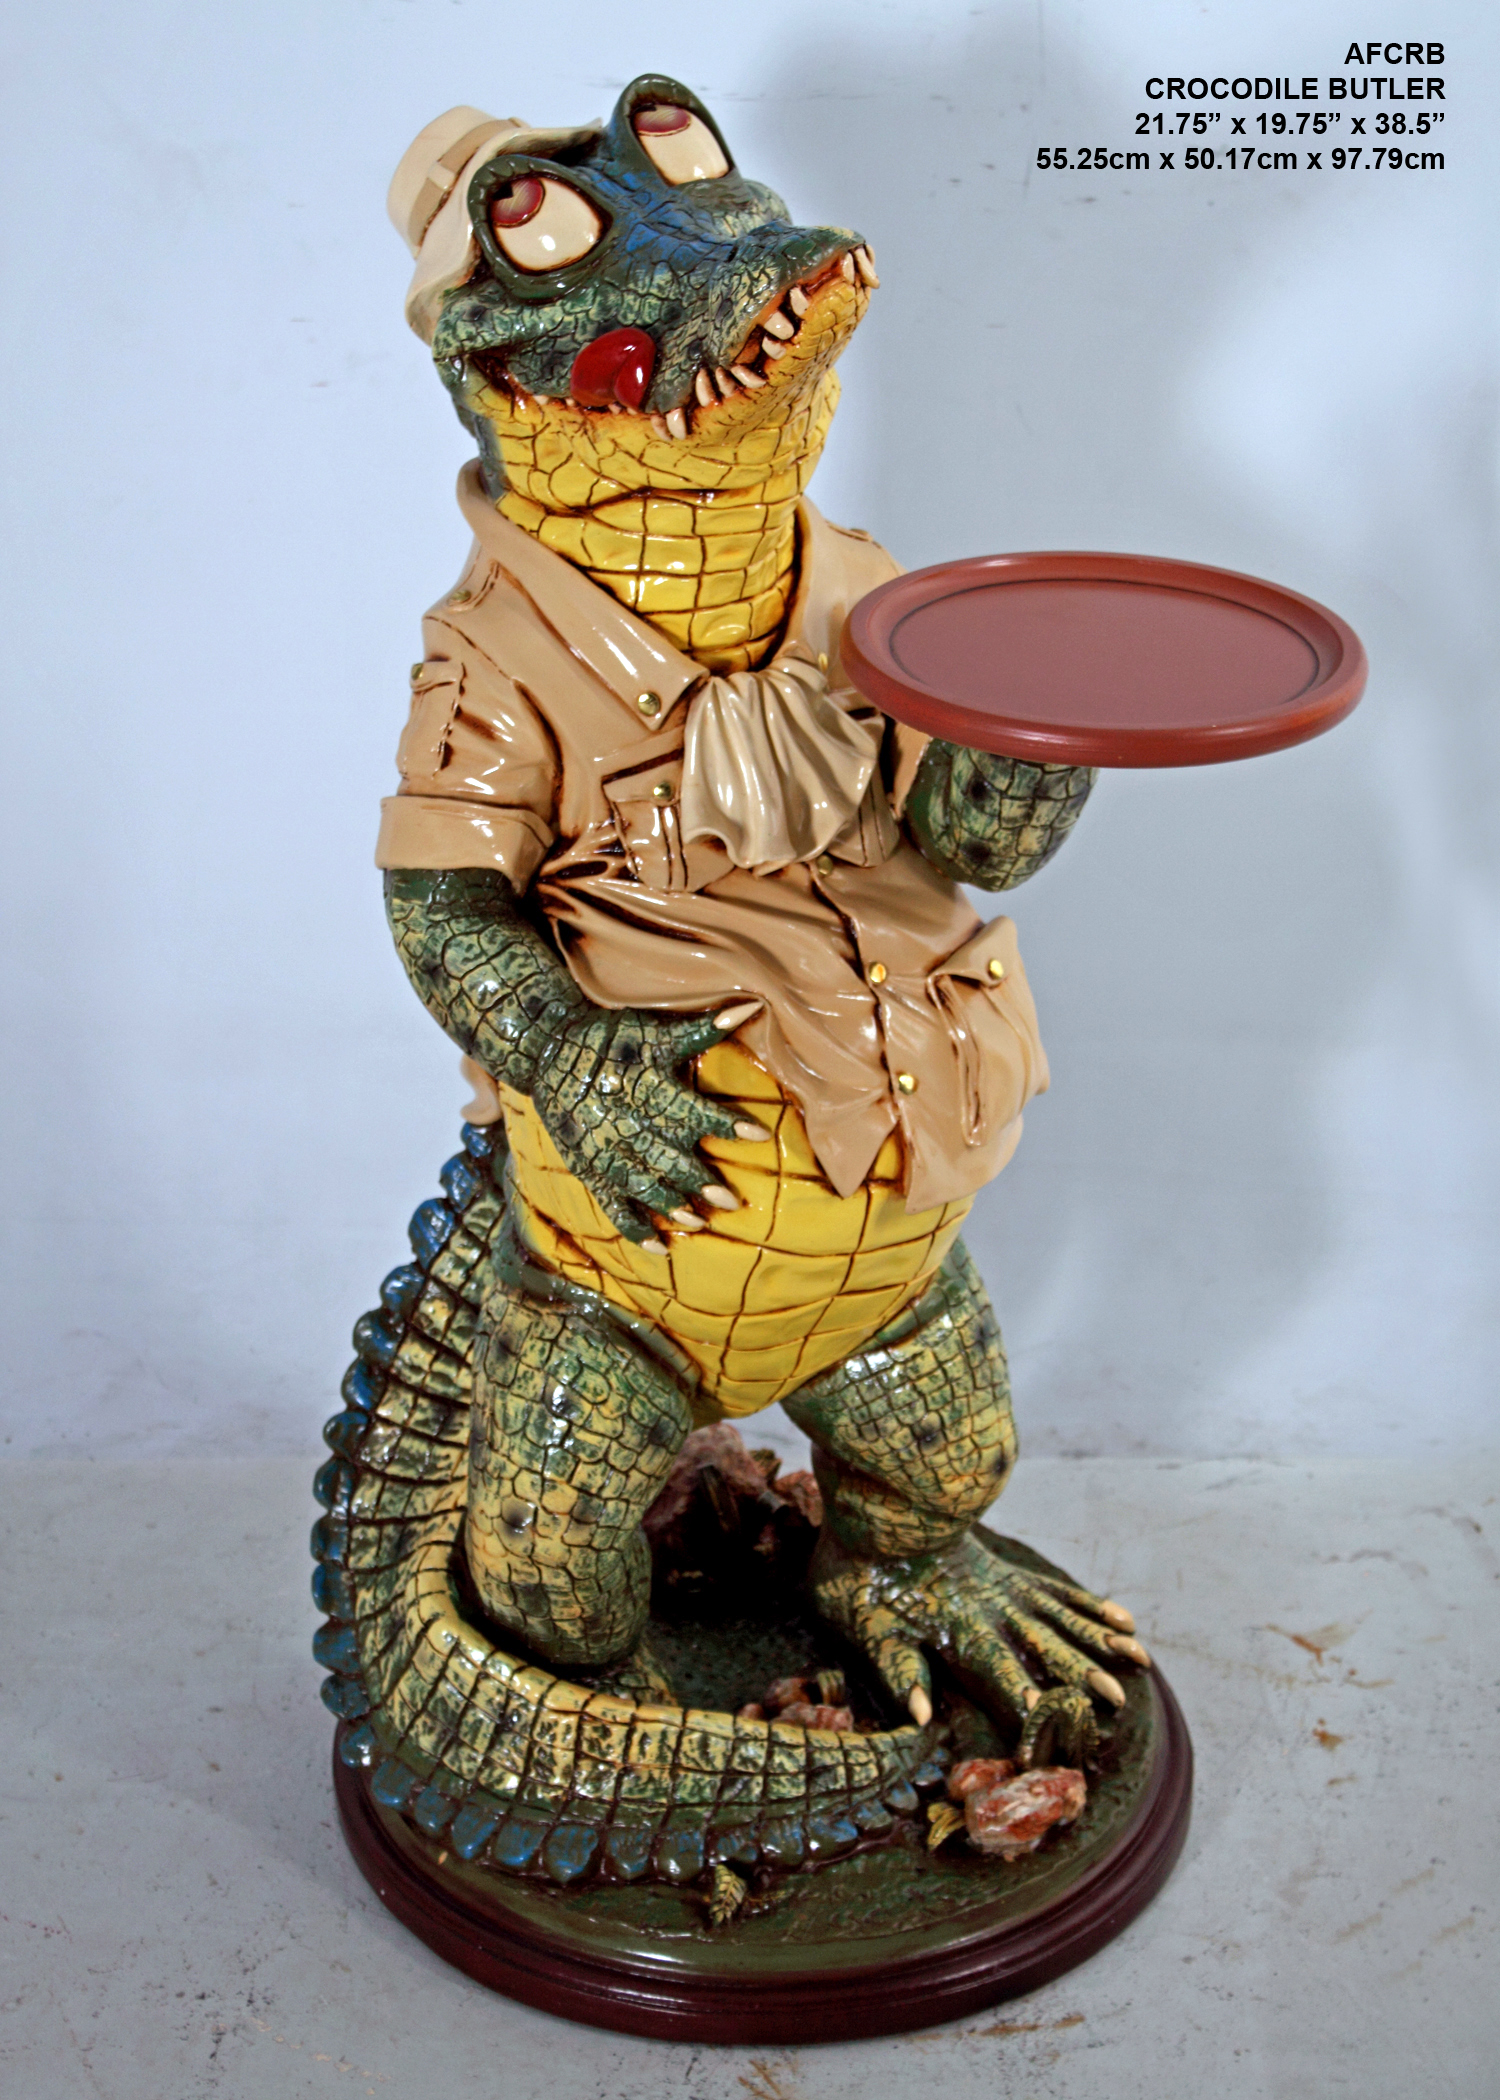 Crocodile Butler 3ft.